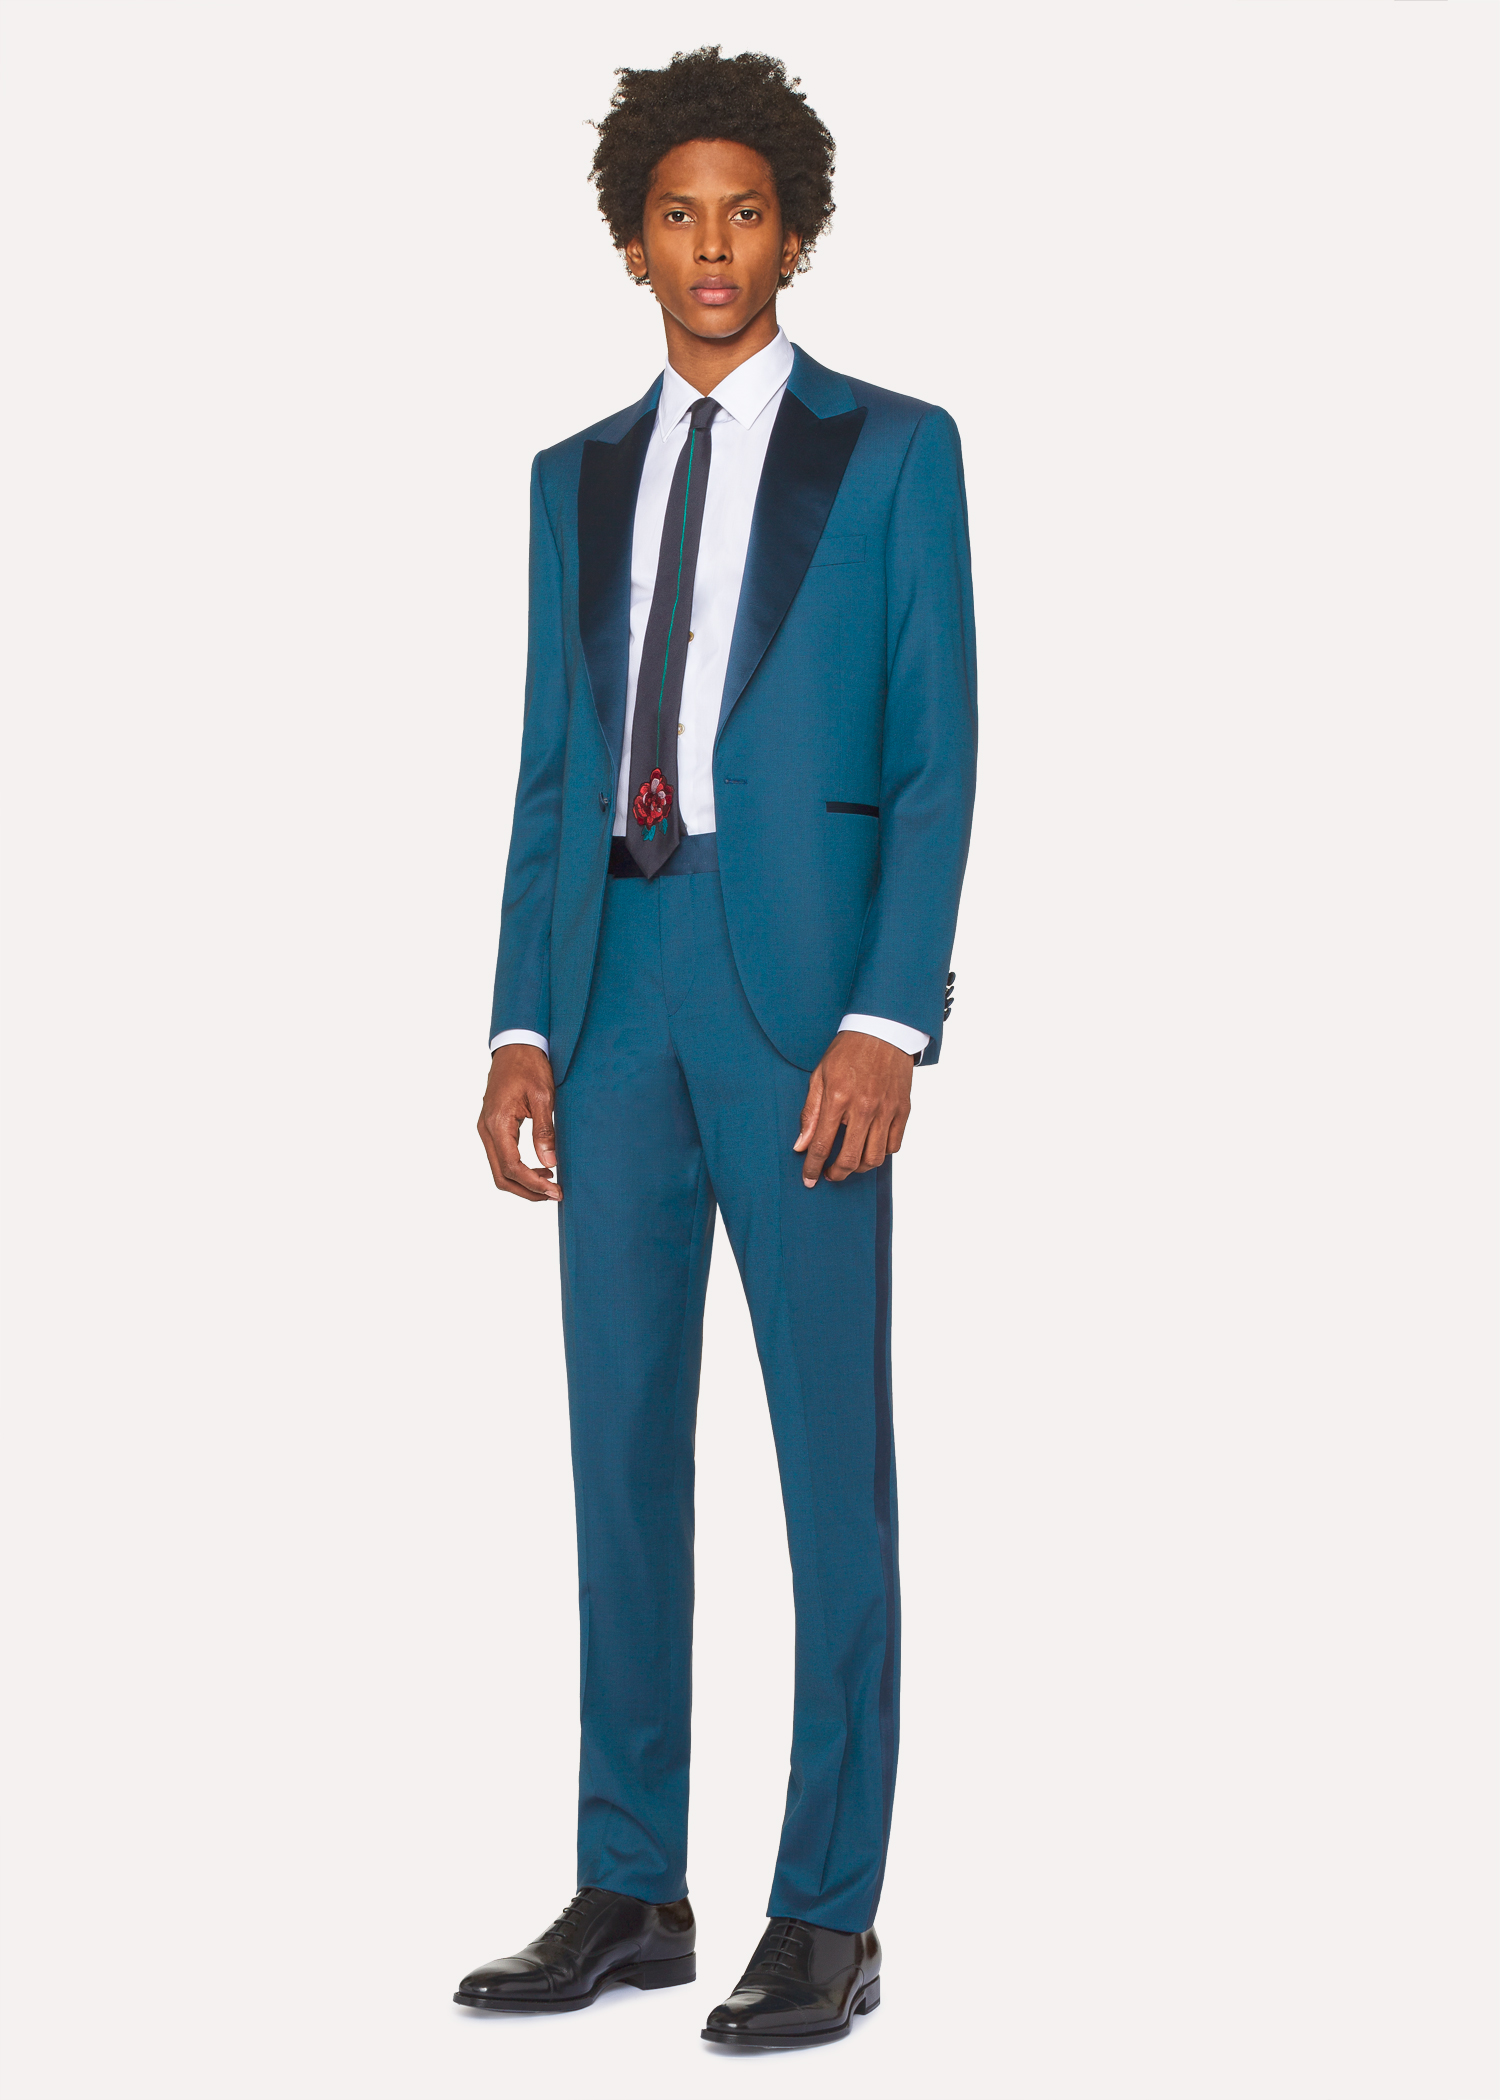 dadc725ef10 Men s Tailored-Fit Teal Wool Evening Suit - Paul Smith US